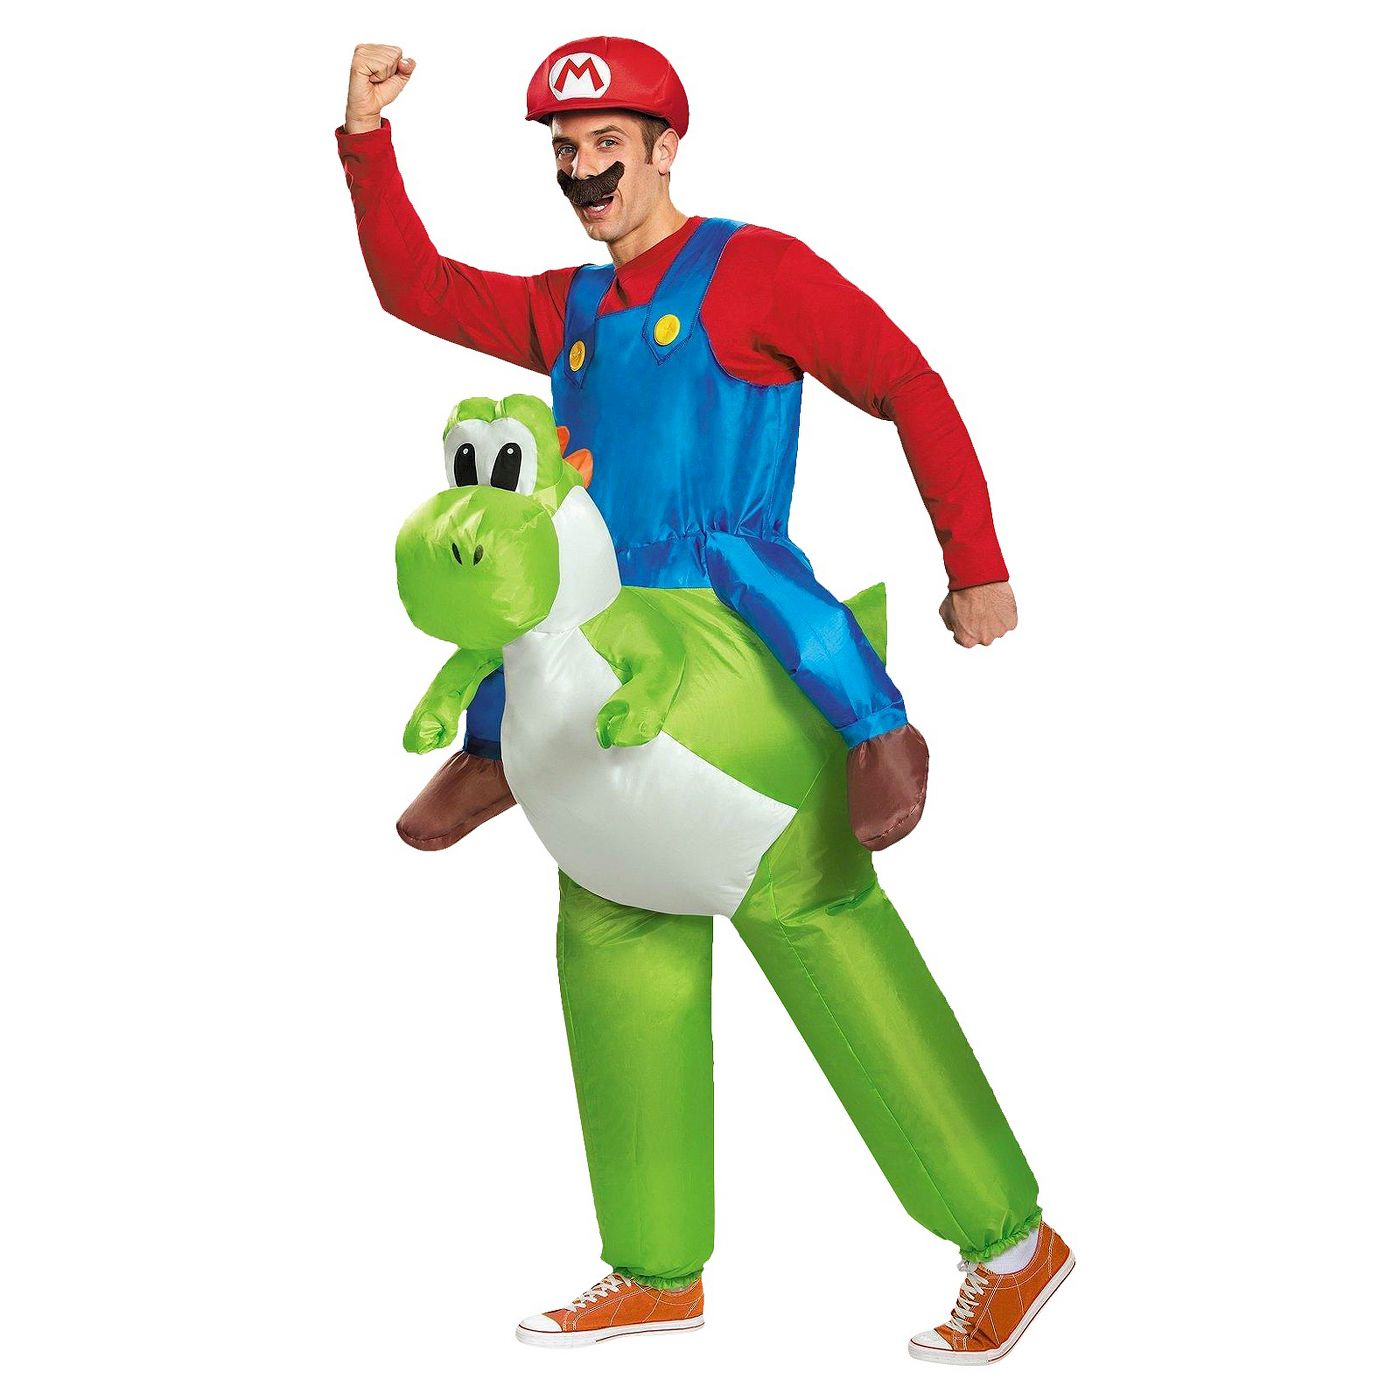 Mario Riding Yoshi Inflatable Adult Super Mario Bros Nintendo Green Costume